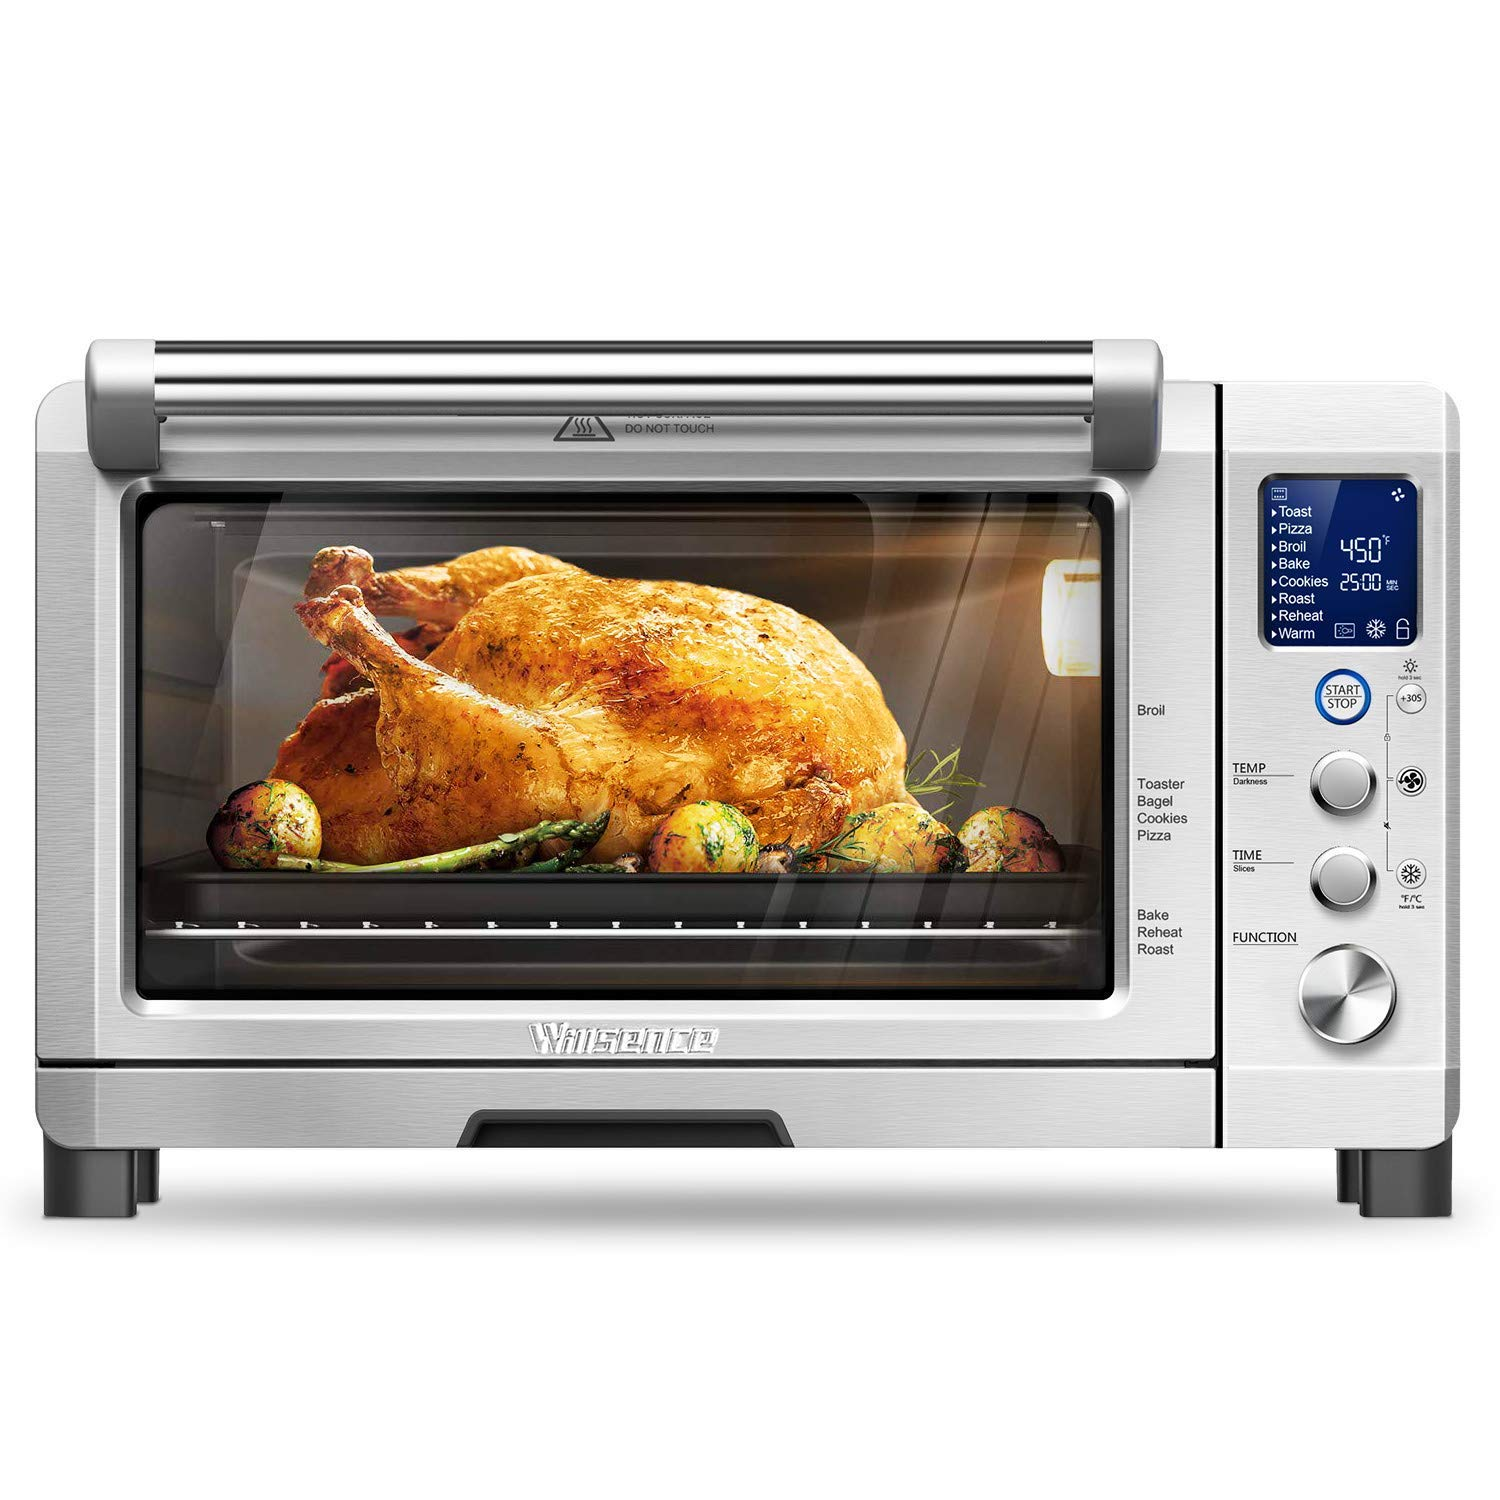 Willsence Toaster Oven Convection Toaster Oven Stainless Steel 6 Slice Countertop LCD Display and Element IQ,1800W,Pizza,Brushed,with 9 Pre-set Cooking Functions by Willsence